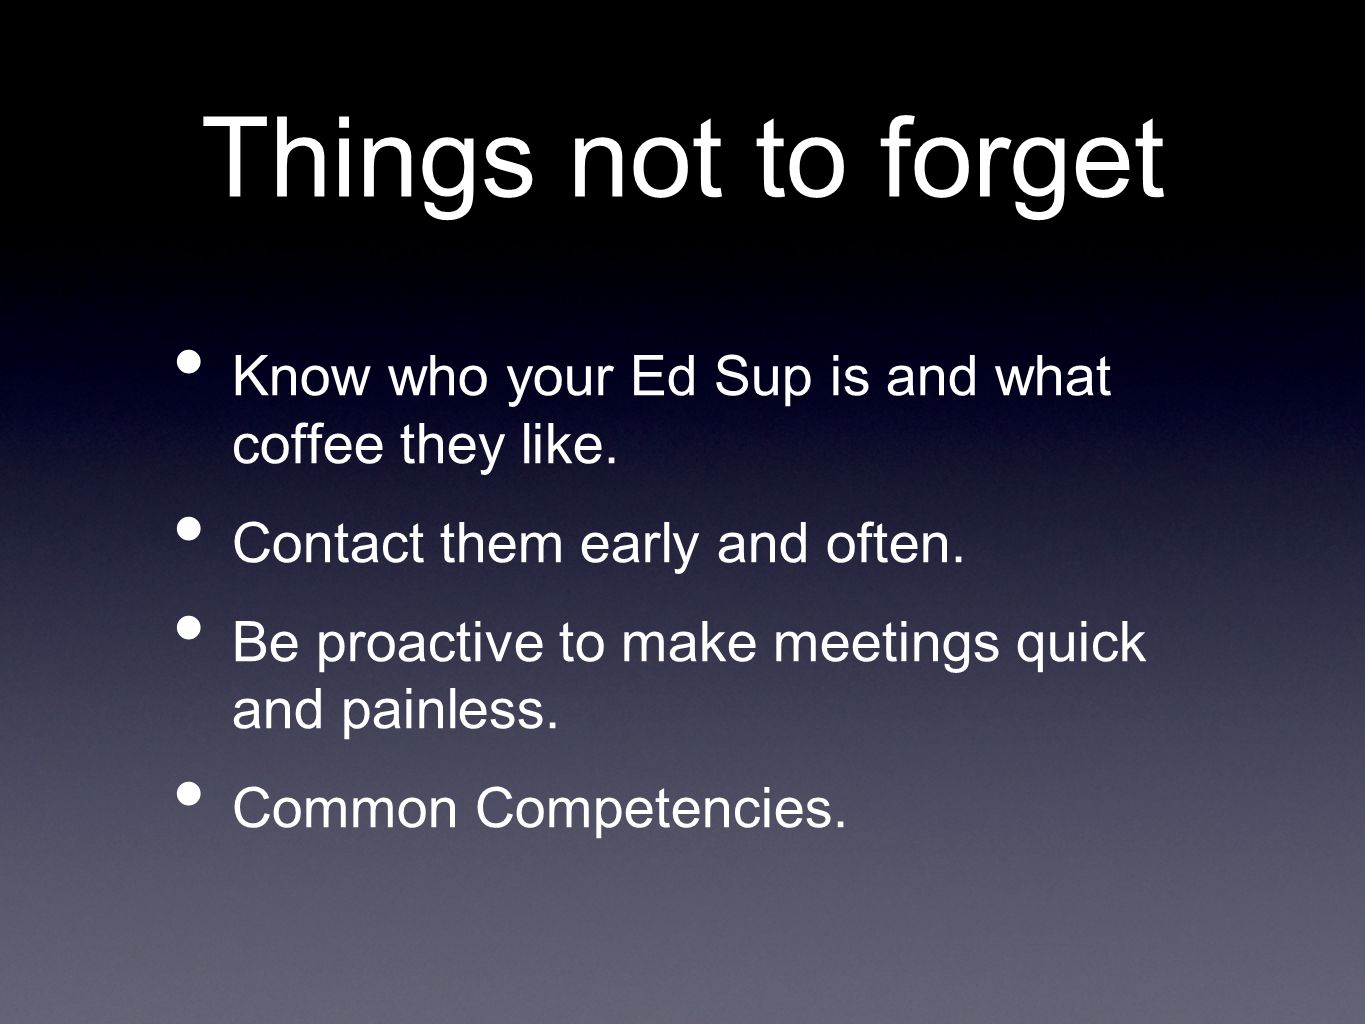 Know who your Ed Sup is and what coffee they like. Contact them early and often. Be proactive to make meetings quick and painless. Common Competencies